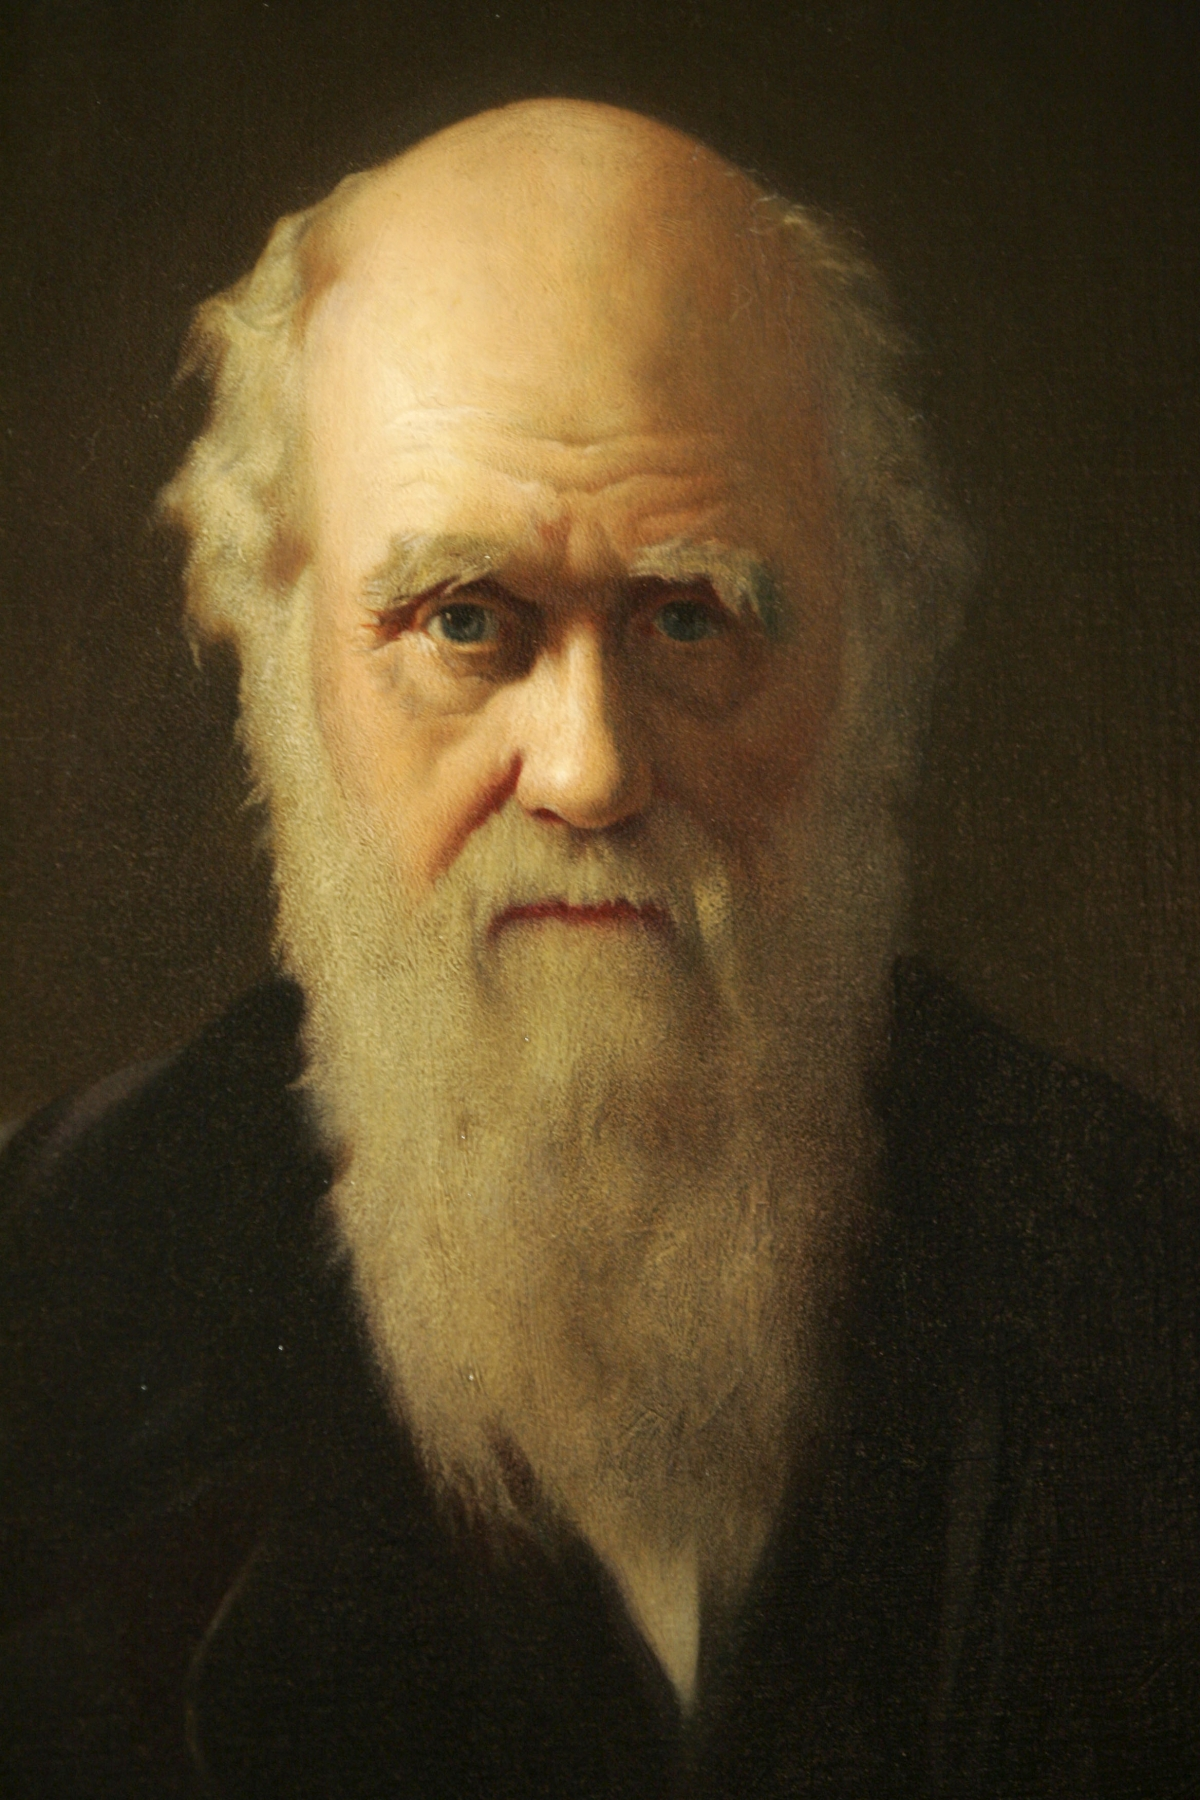 Getting over evolution: Is Charles Darwin's theory still controversial for Christians?